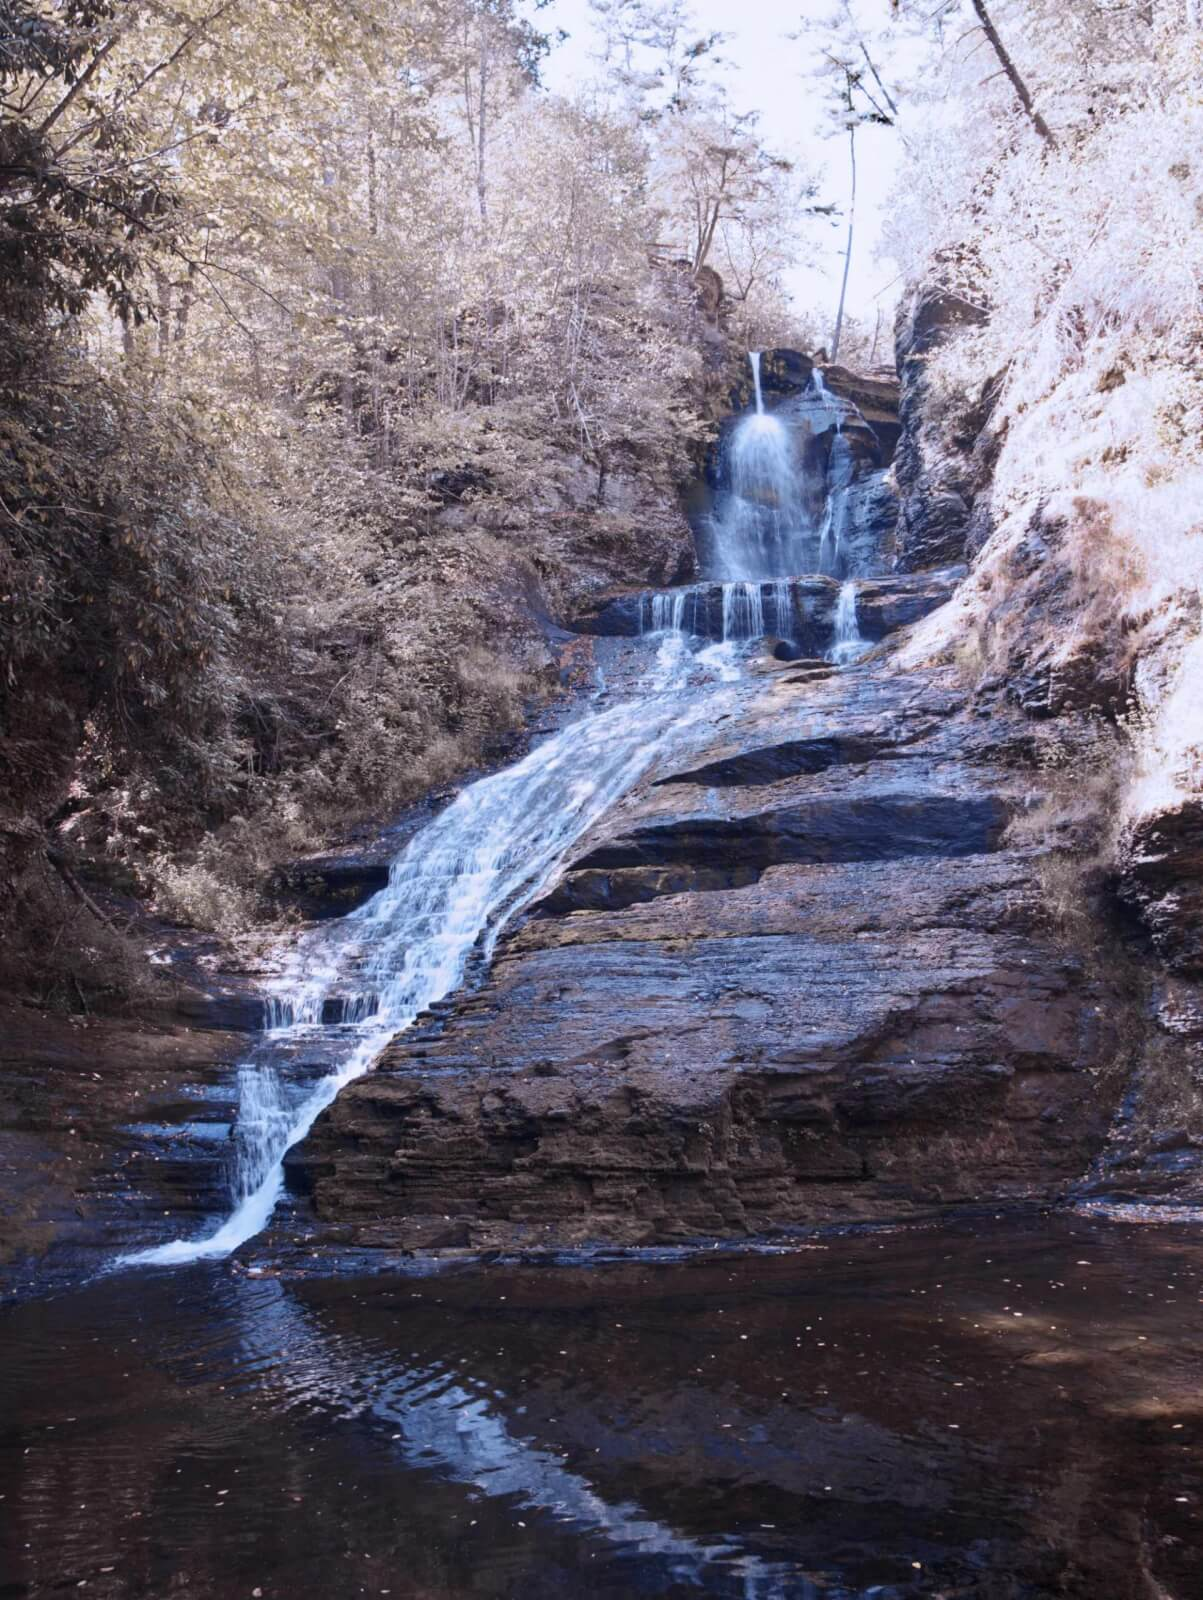 Dingmann_waterfall in Pennsylvania near Milford and Delaware Water Gap